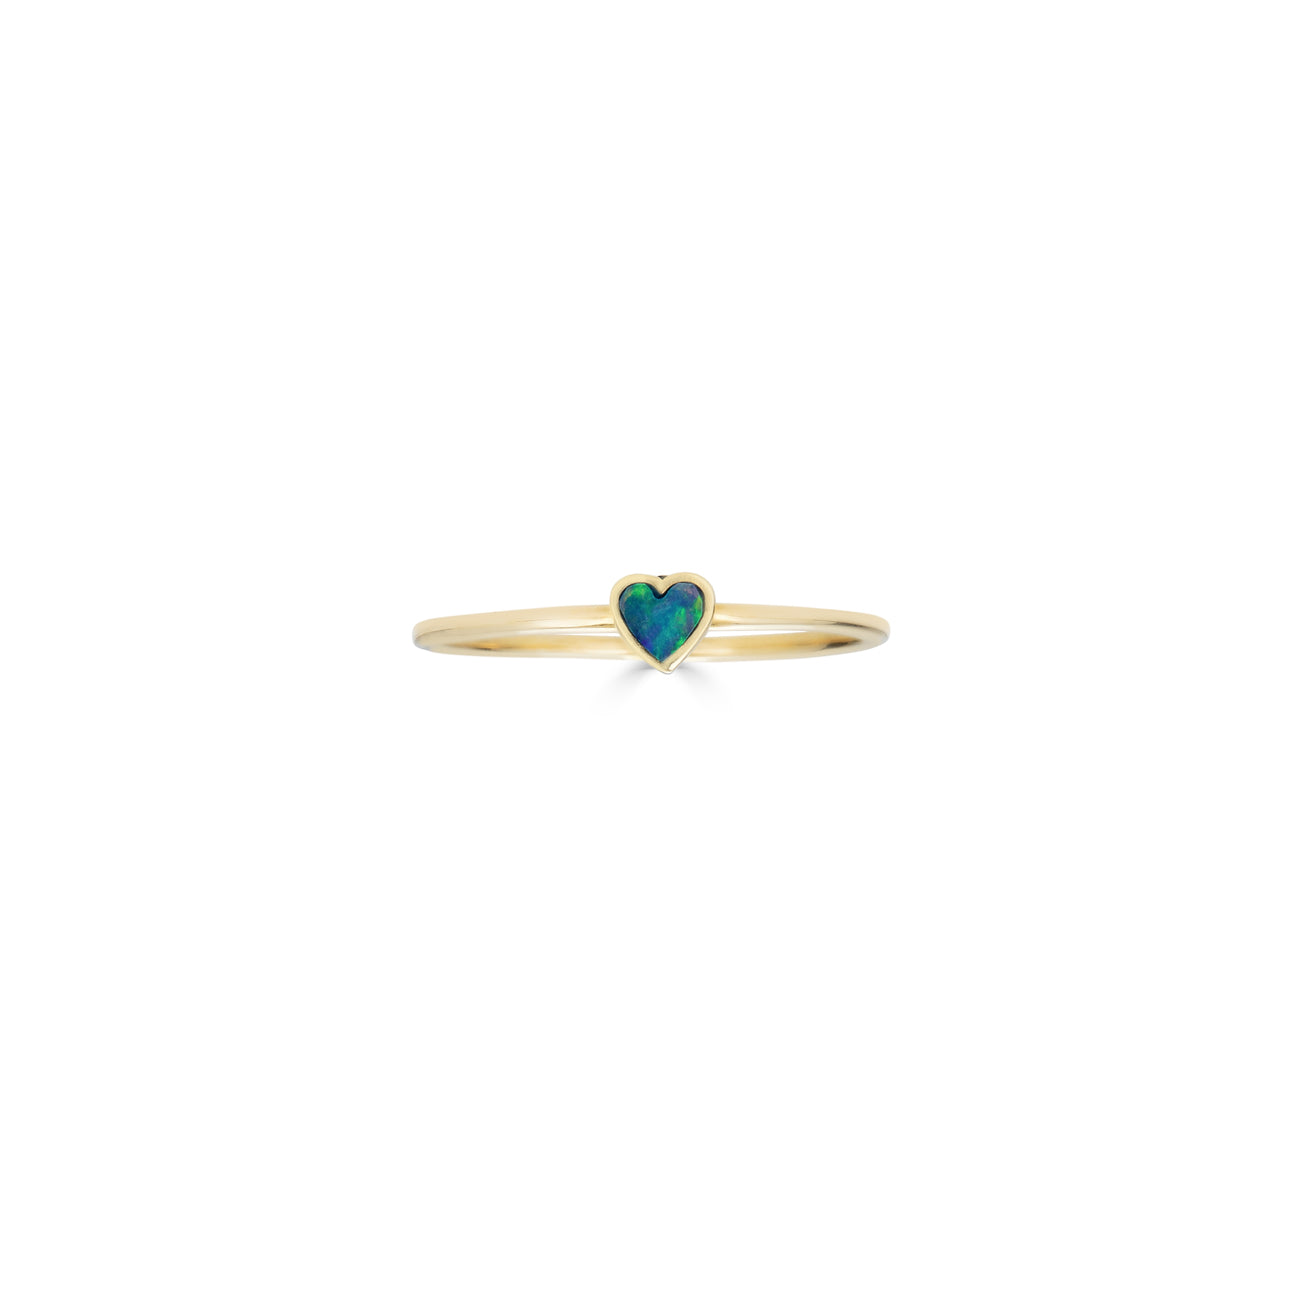 Image of Tiny Opal Inlaid Heart Ring